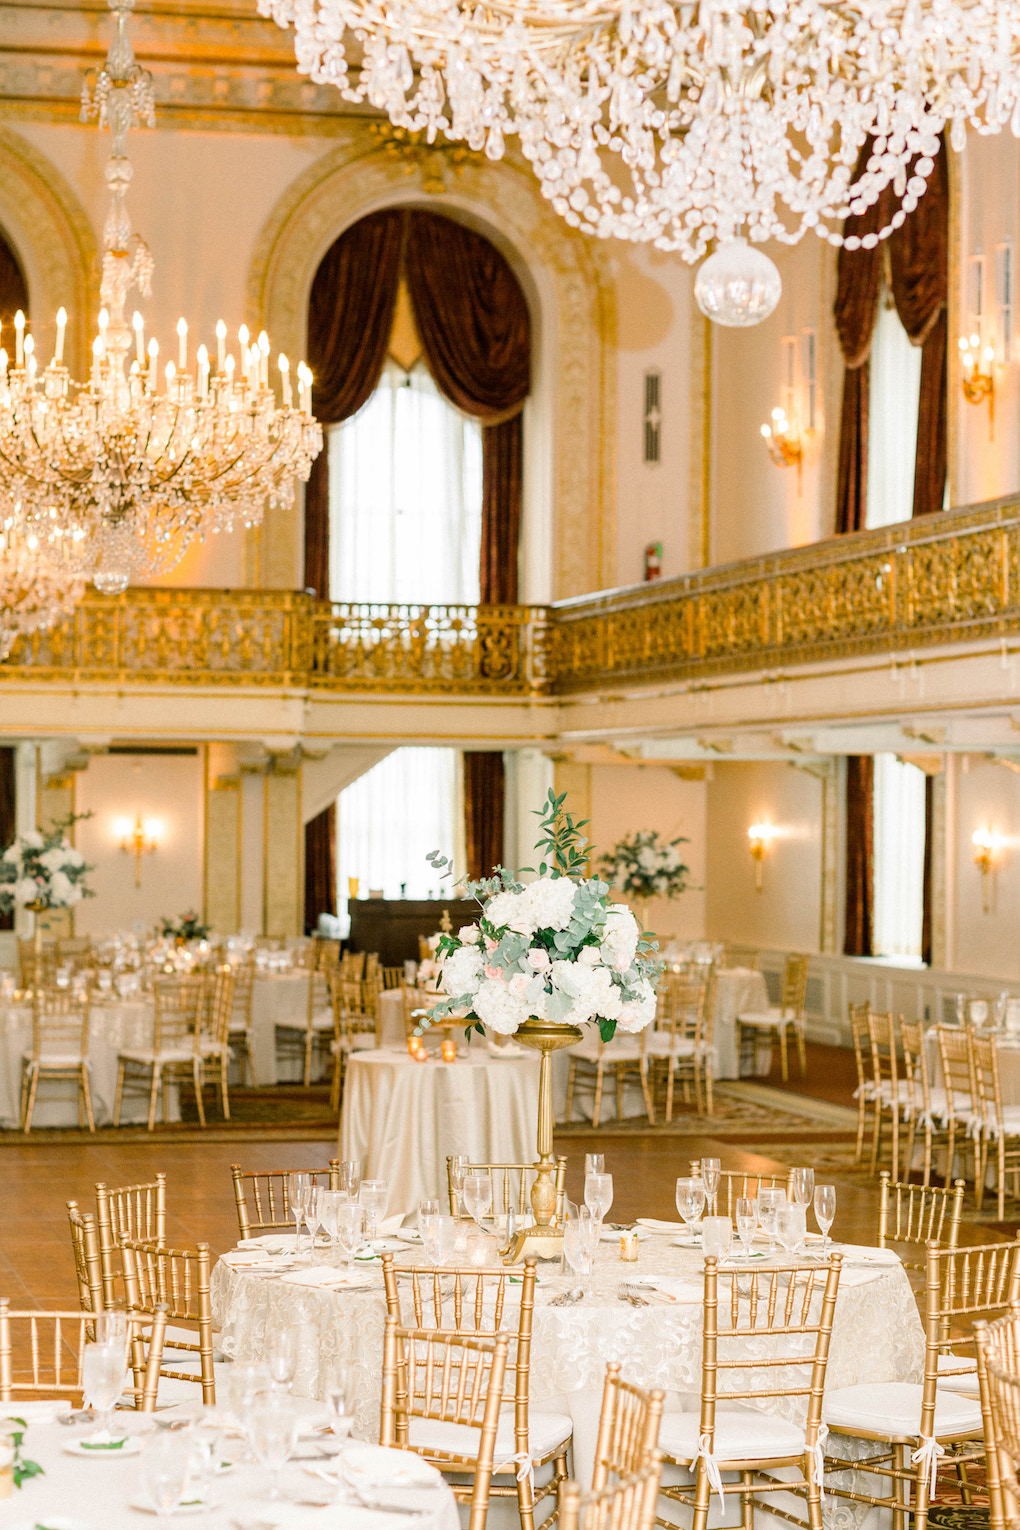 Ballroom wedding inspiration: Romantic Fairytale wedding at the Omni William Penn in Pittsburgh, PA planned by Exhale Events. Find more wedding inspiration at exhale-events.com!